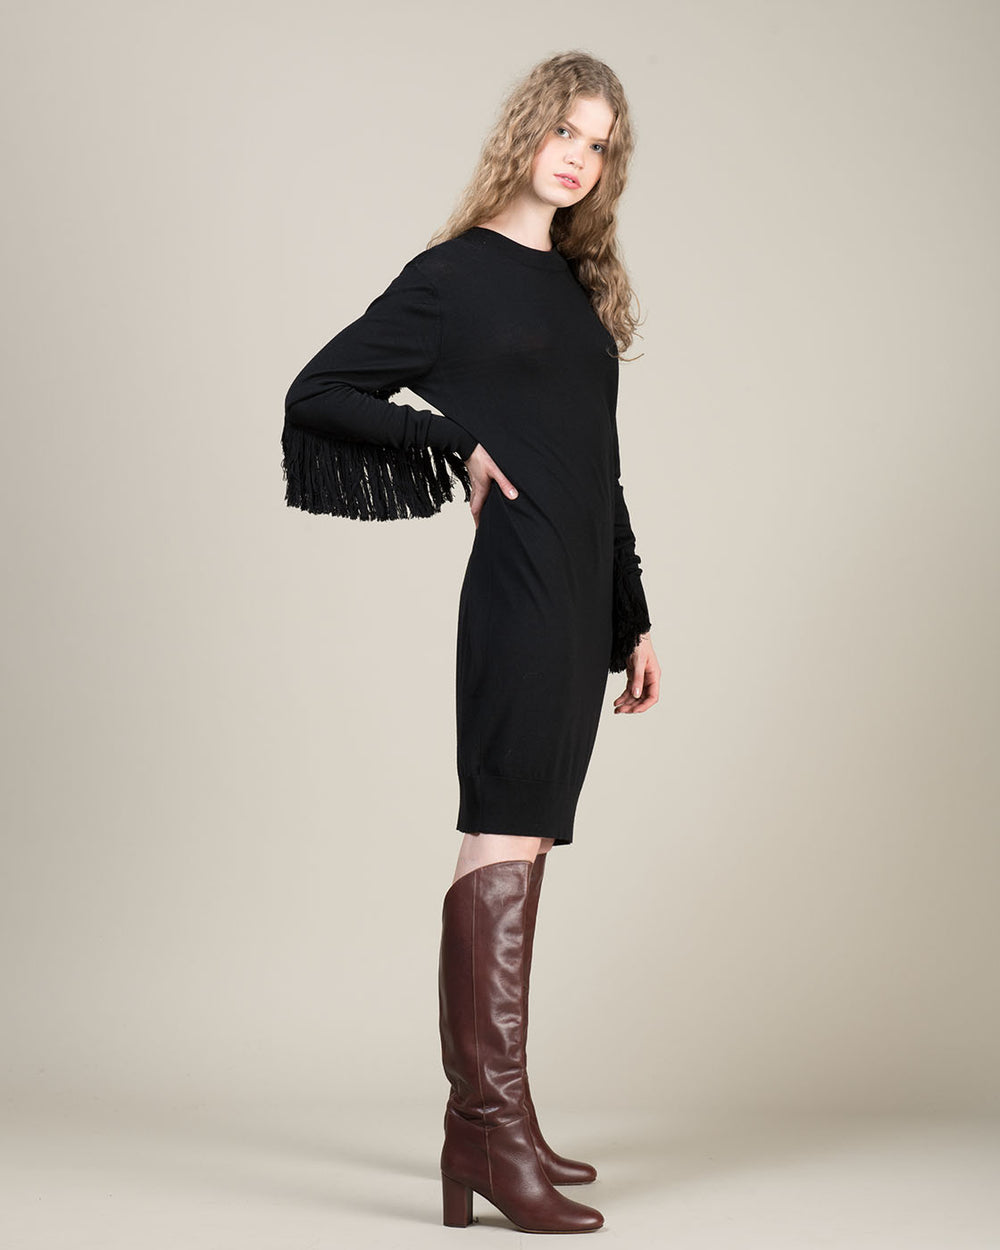 Black Dress with Knit Fringe